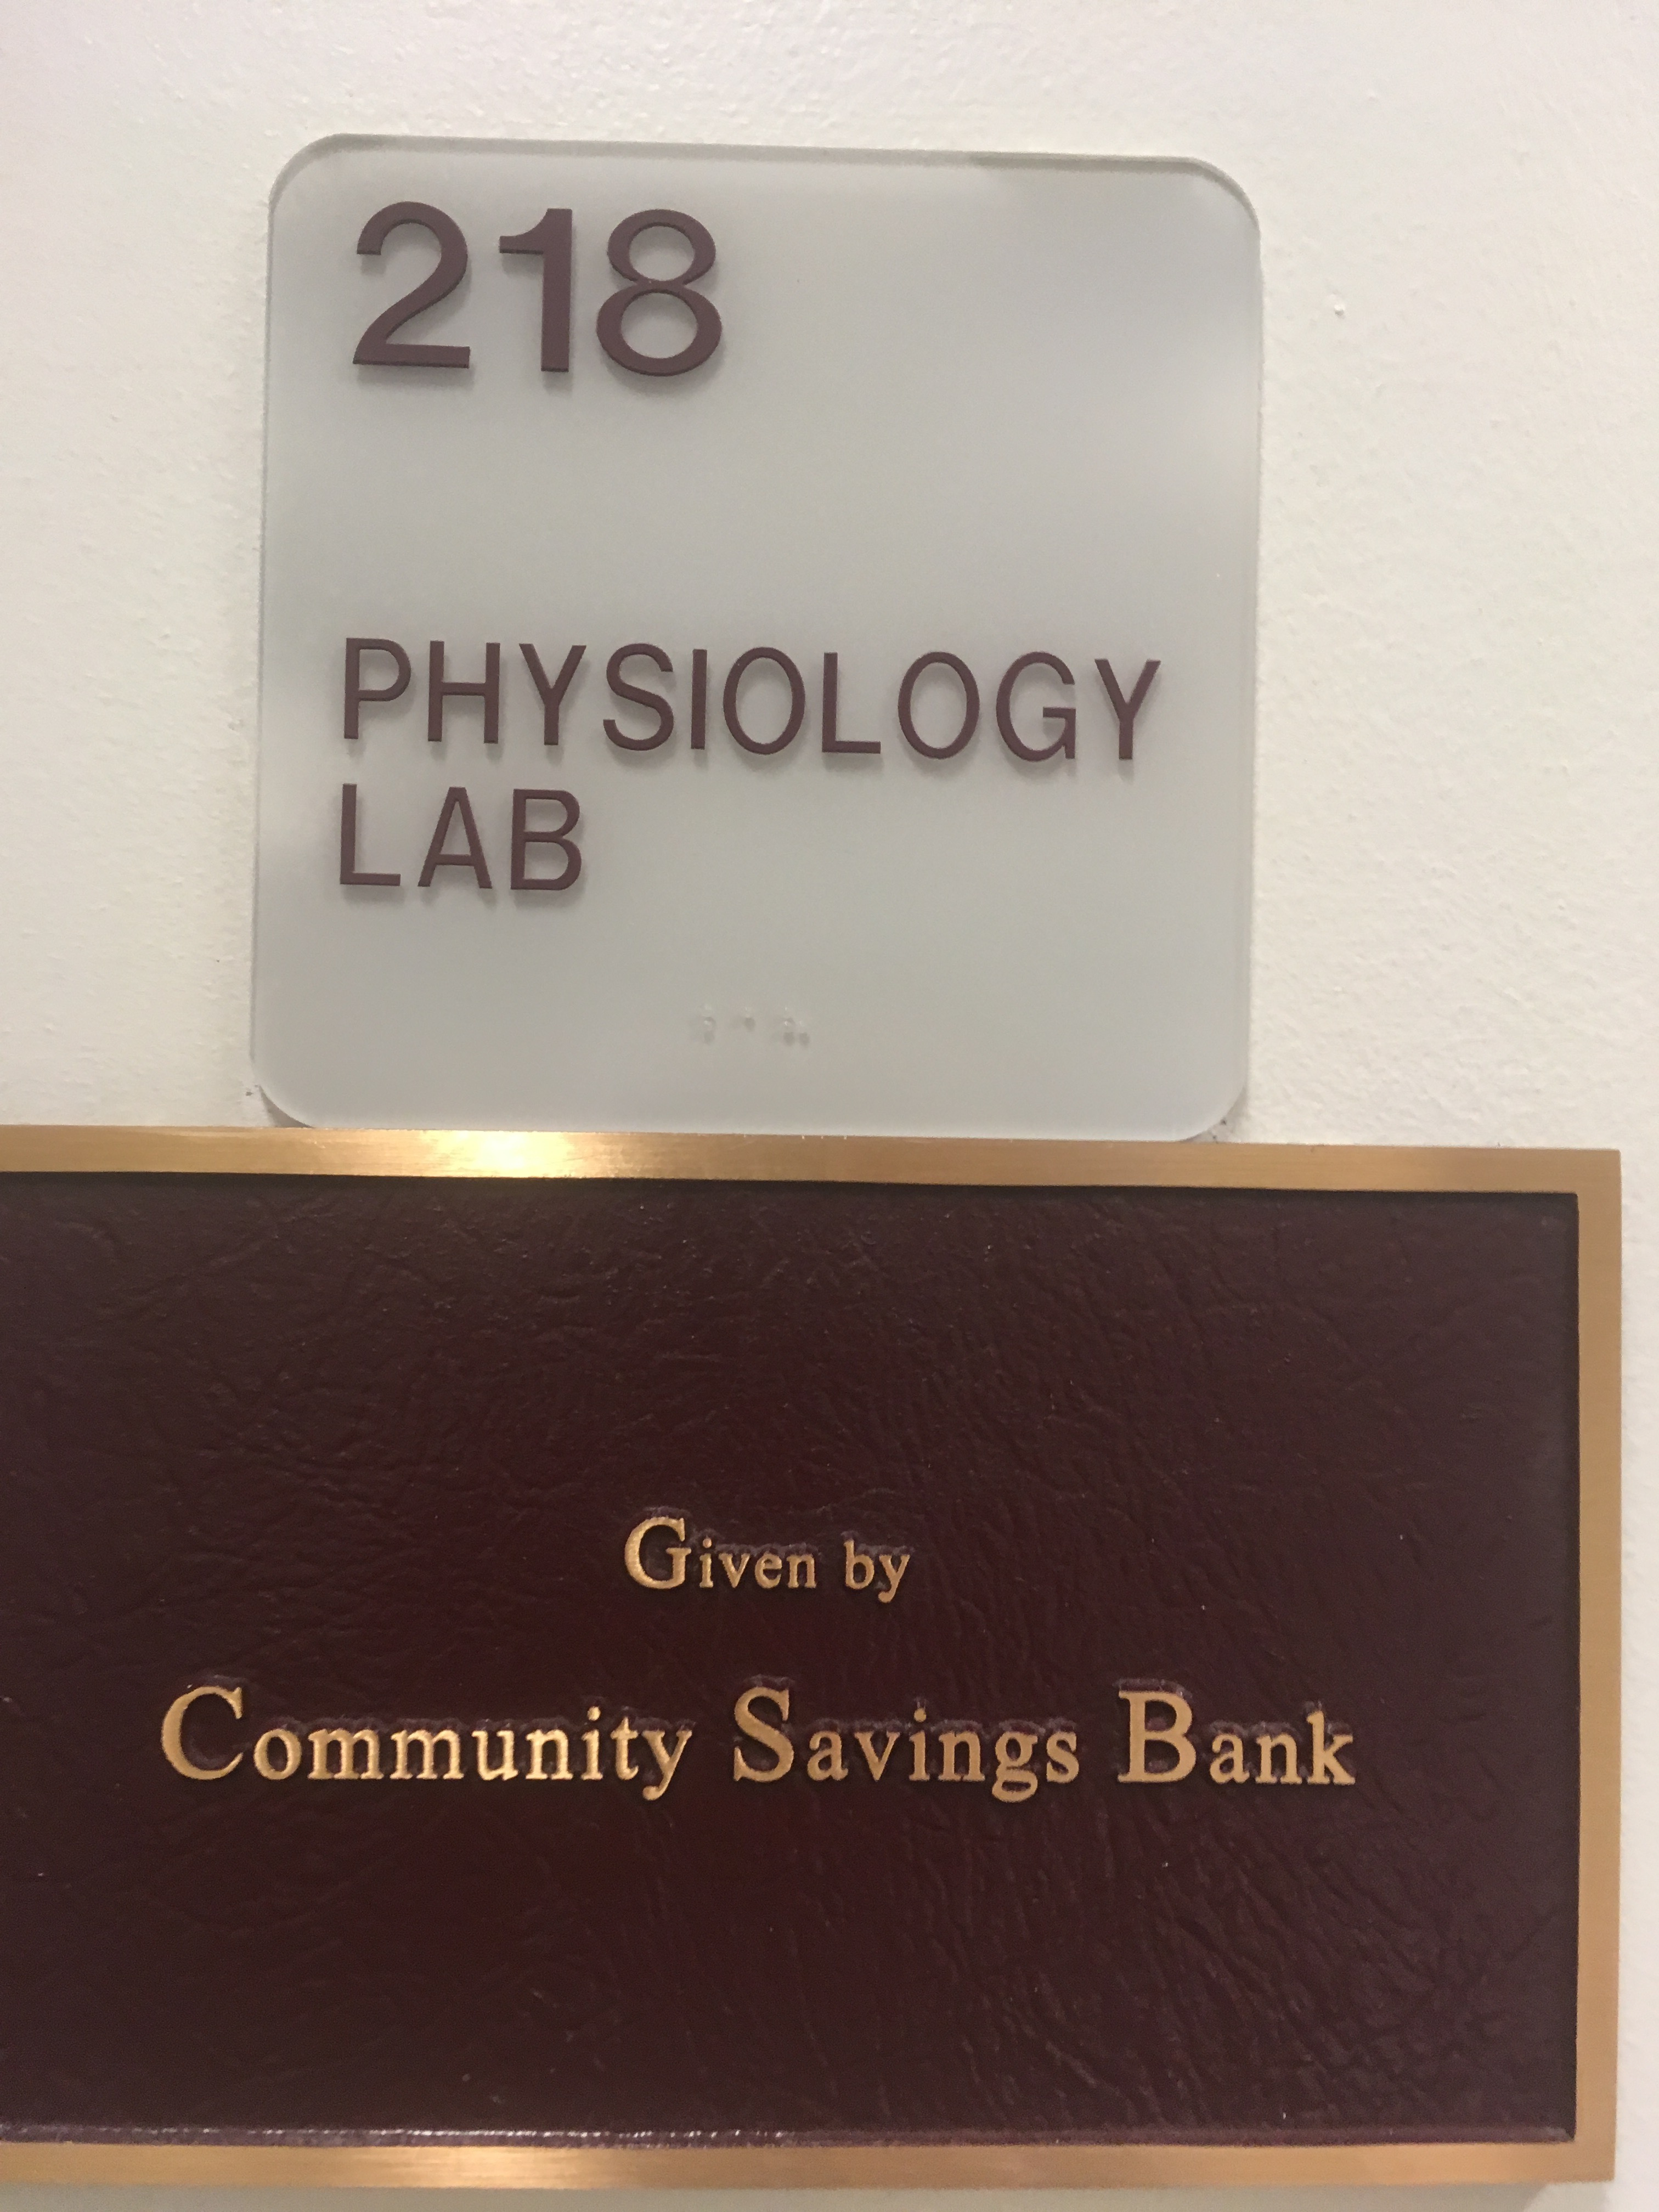 Photo of McMichael 218 room number with dedication plaque installed below